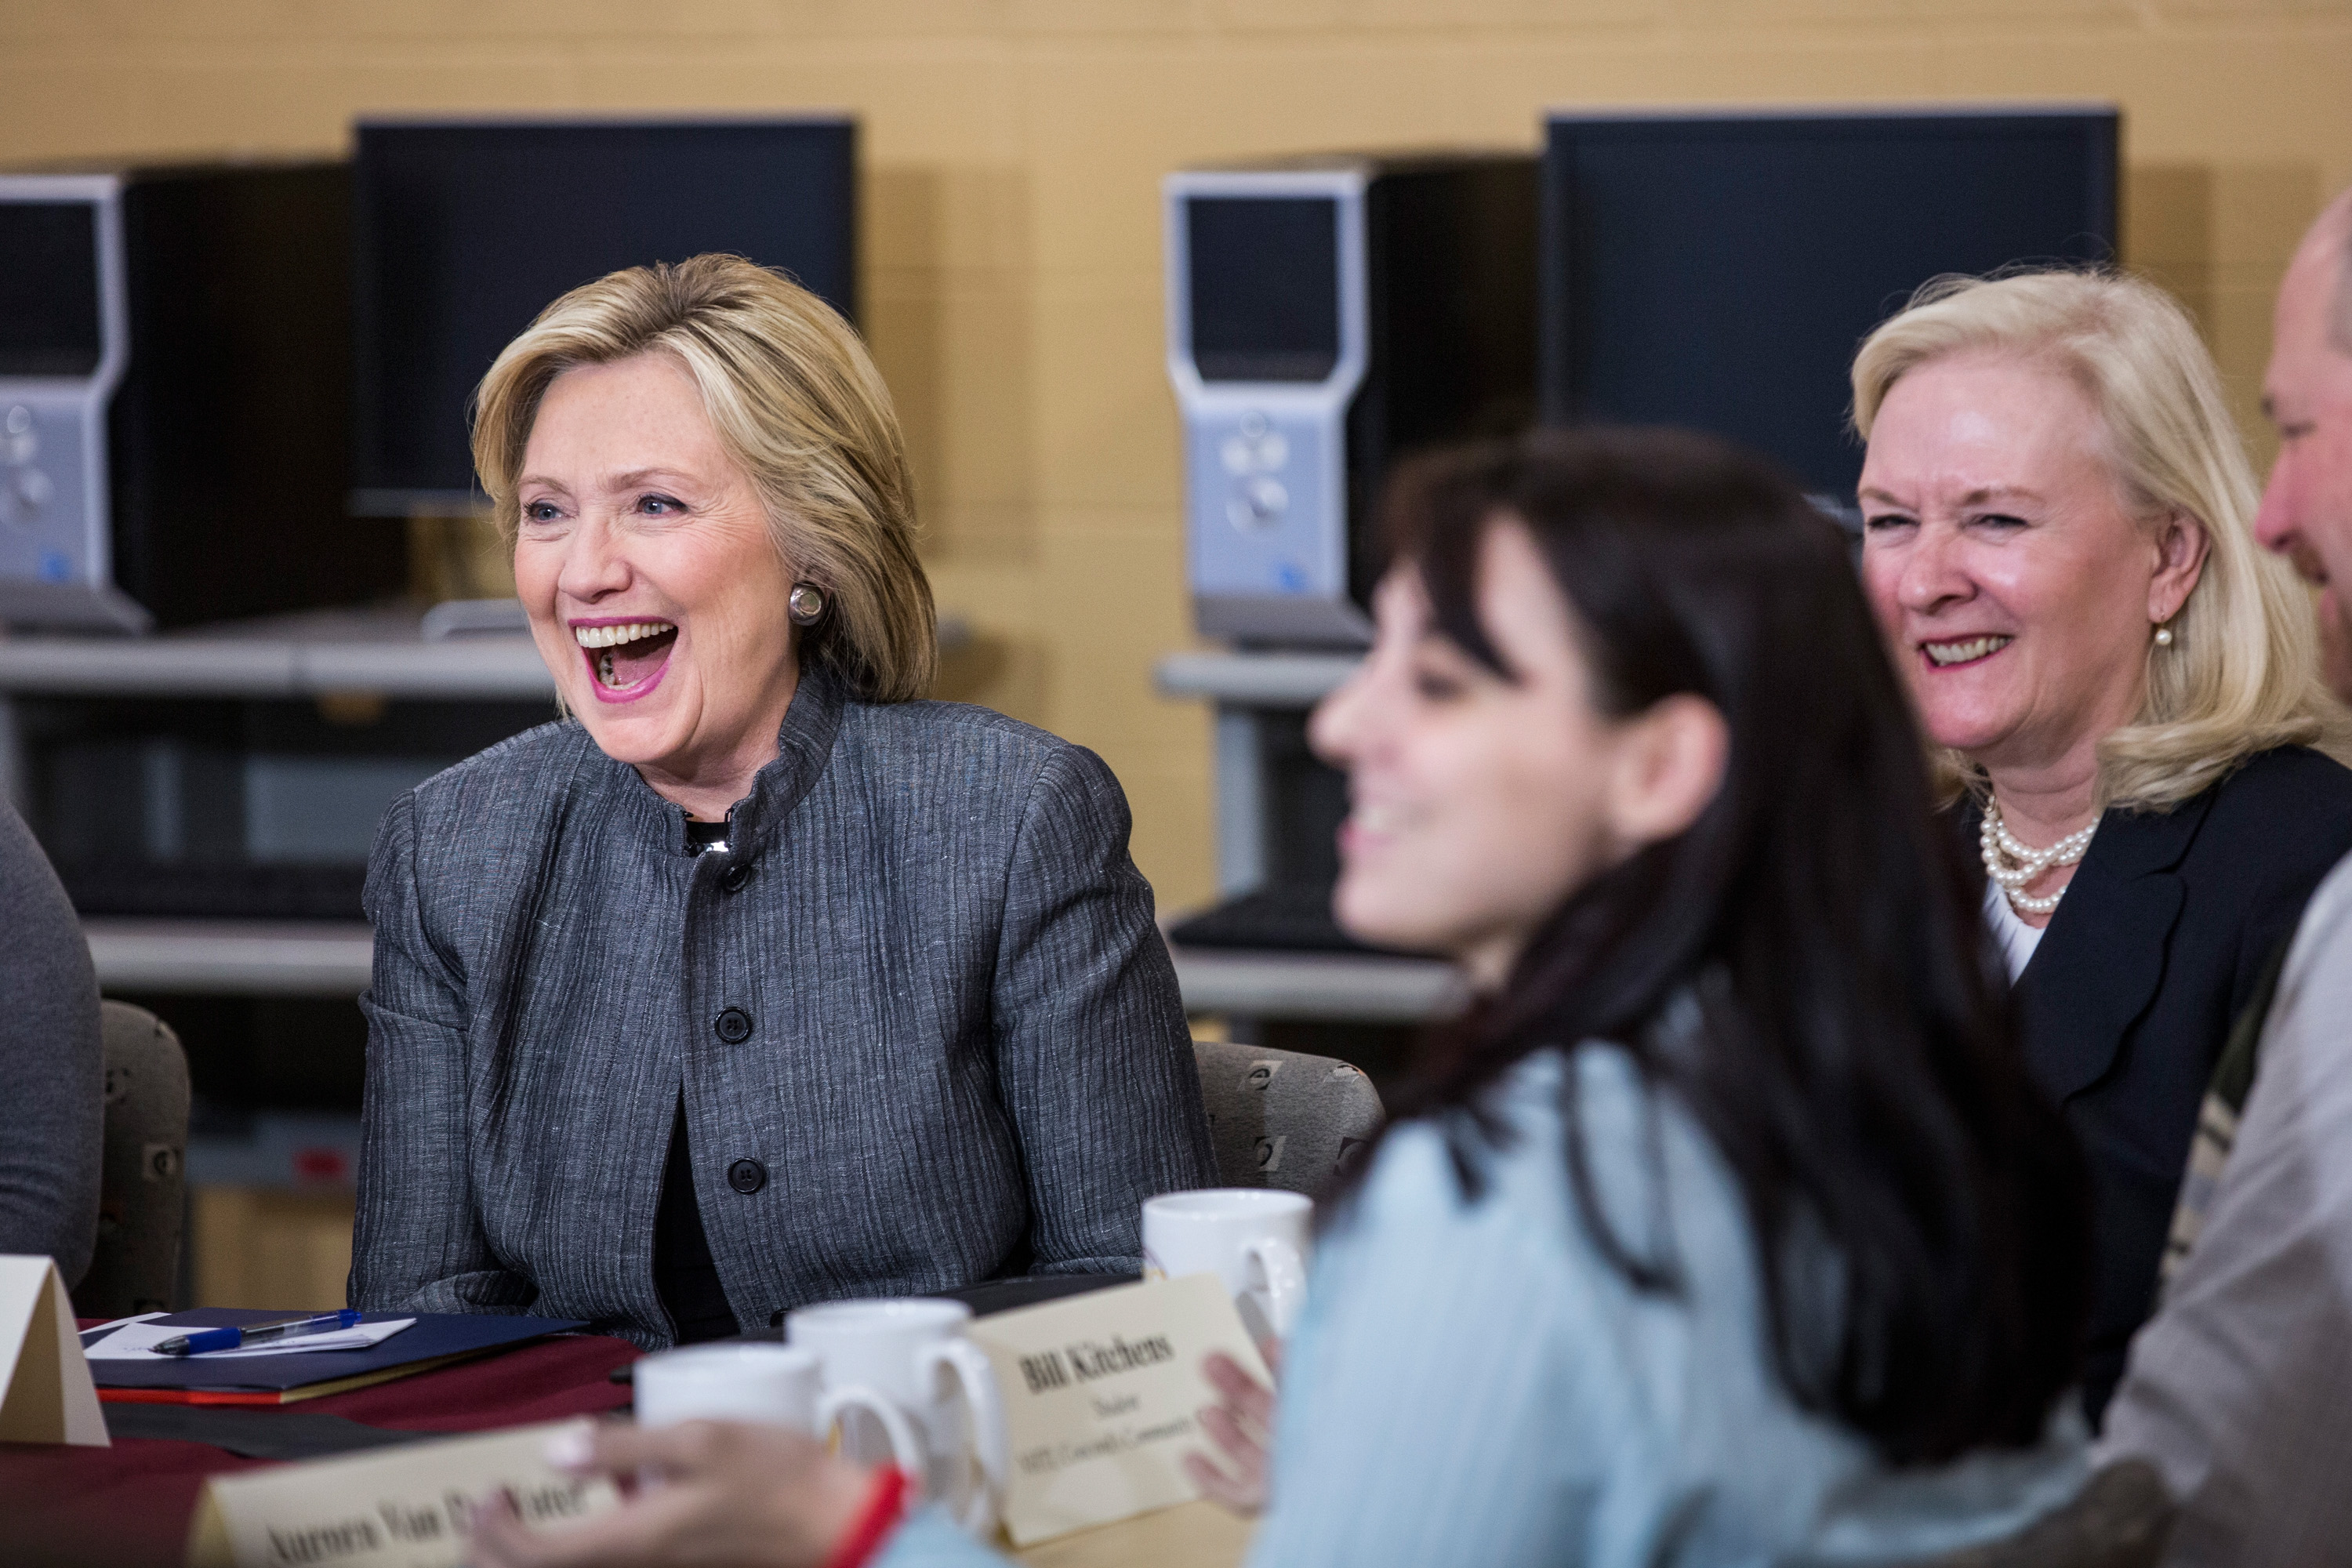 """Concord, N.H. - April 21:  Clinton got a chance to talk student debt with young women at a community college in Concord, New Hampshire. """"You cannot expect people to have that much debt and then be expected to pay it off,"""" she said."""